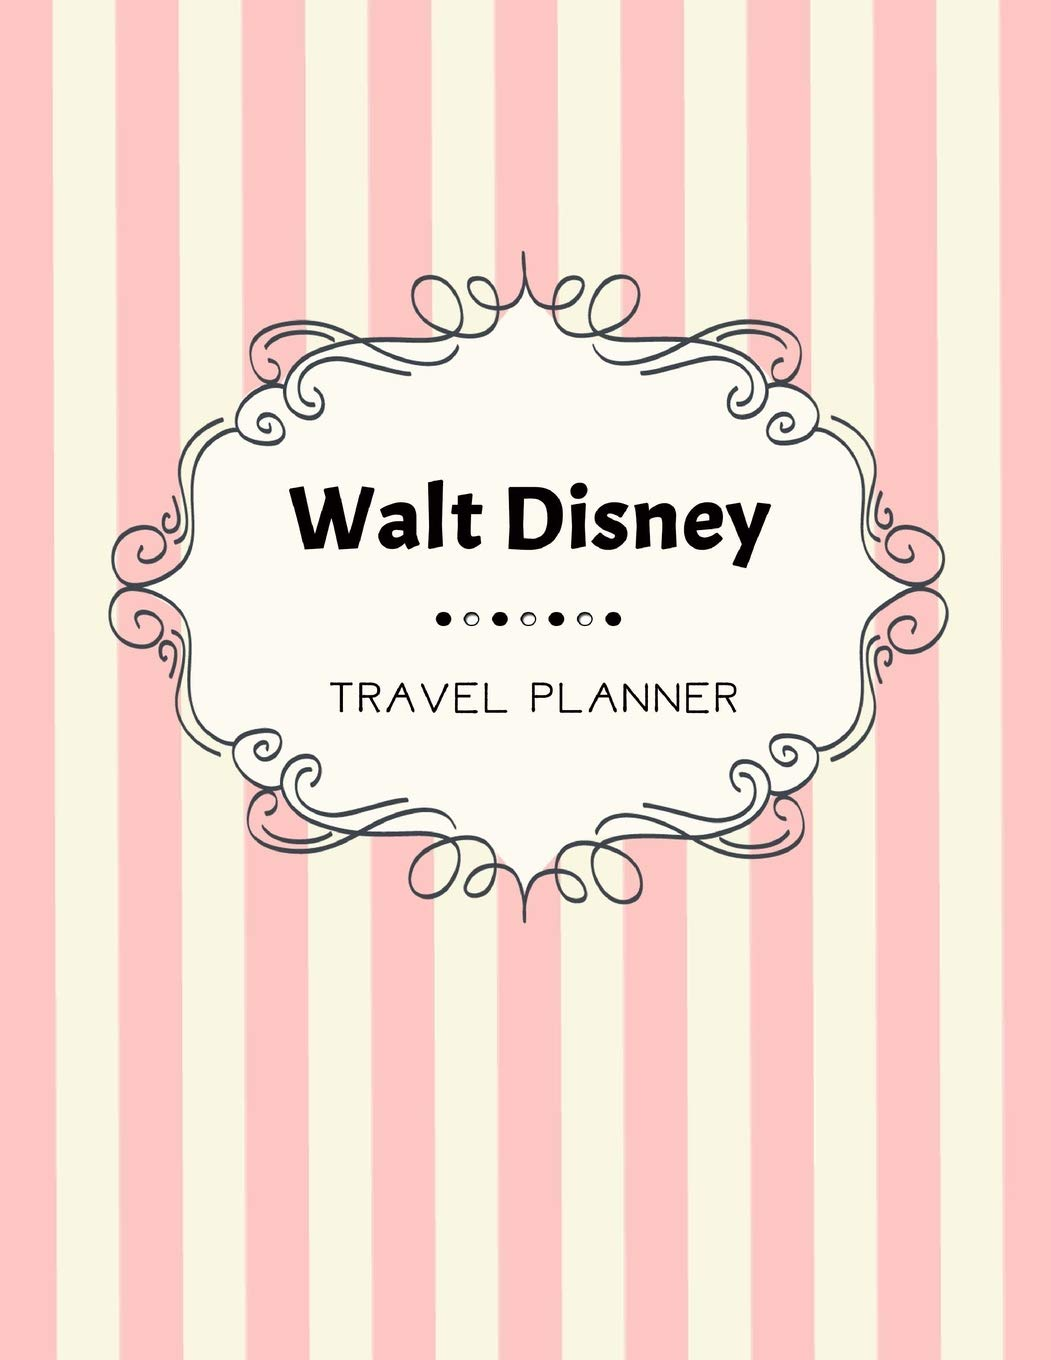 Walt Disney Travel Planner: Disneyland, Disney Cruise ...